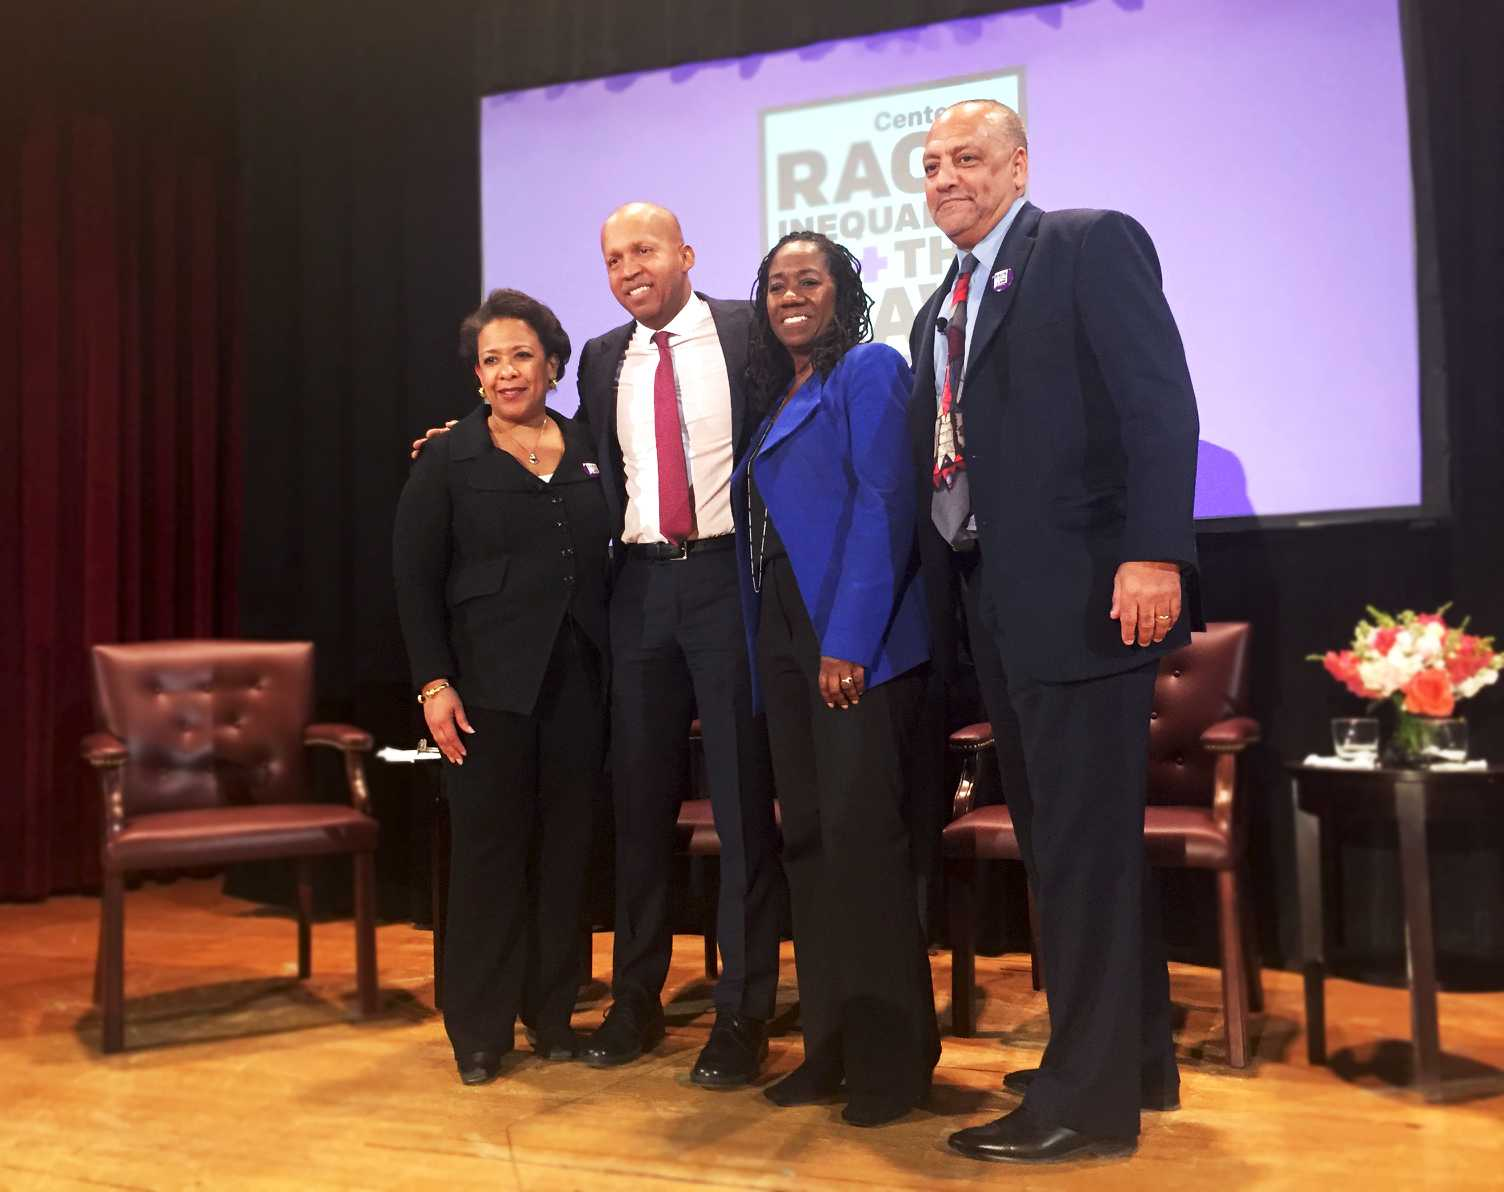 From left to right, former Attorney General Loretta Lynch, NYU Law professor Bryan Stevenson, Sherrilyn Ifill and Tony Thompson at the Center on Race, Inequality and the Law's Inaugural Conversation.  This event took place in the Greenberg Lounge of the NYU Law school on February 27 to discuss the effects of racial bias and economic inequality.